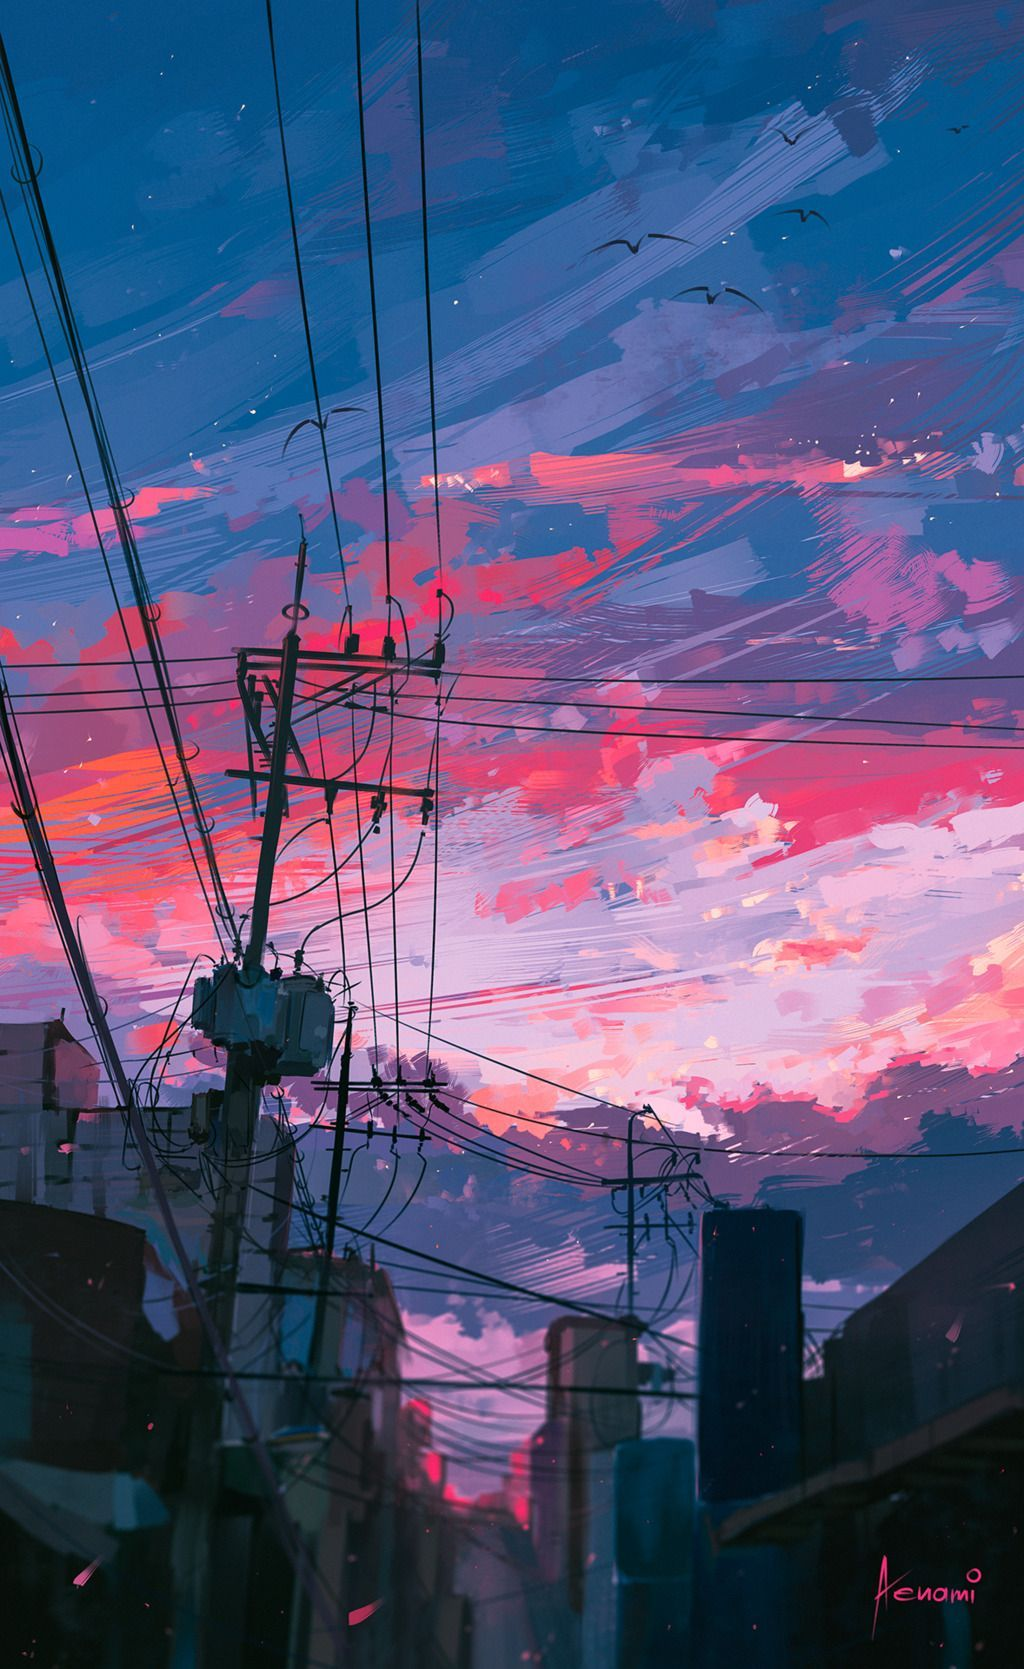 Pin By Grace On Anime Aes Art Wallpaper Anime Scenery